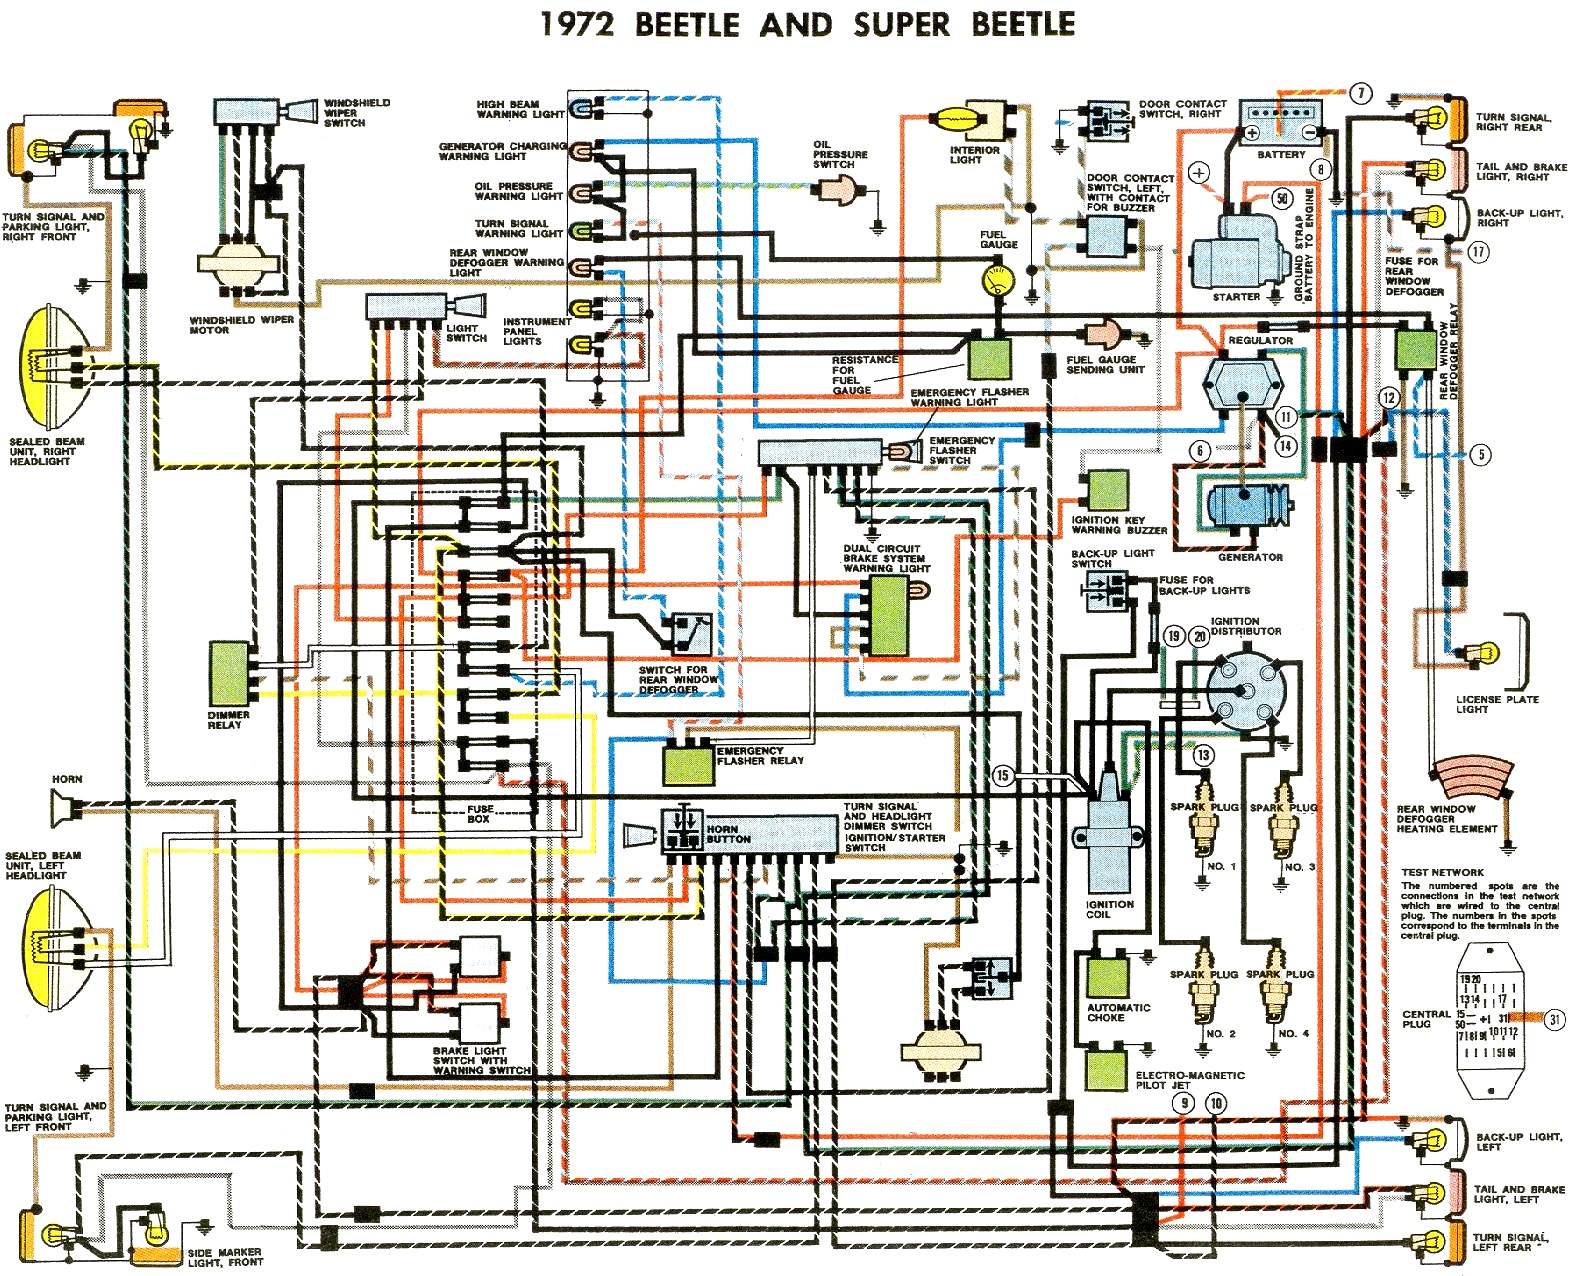 bug_72 1972 beetle wiring diagram thegoldenbug com vw bug wiring at panicattacktreatment.co